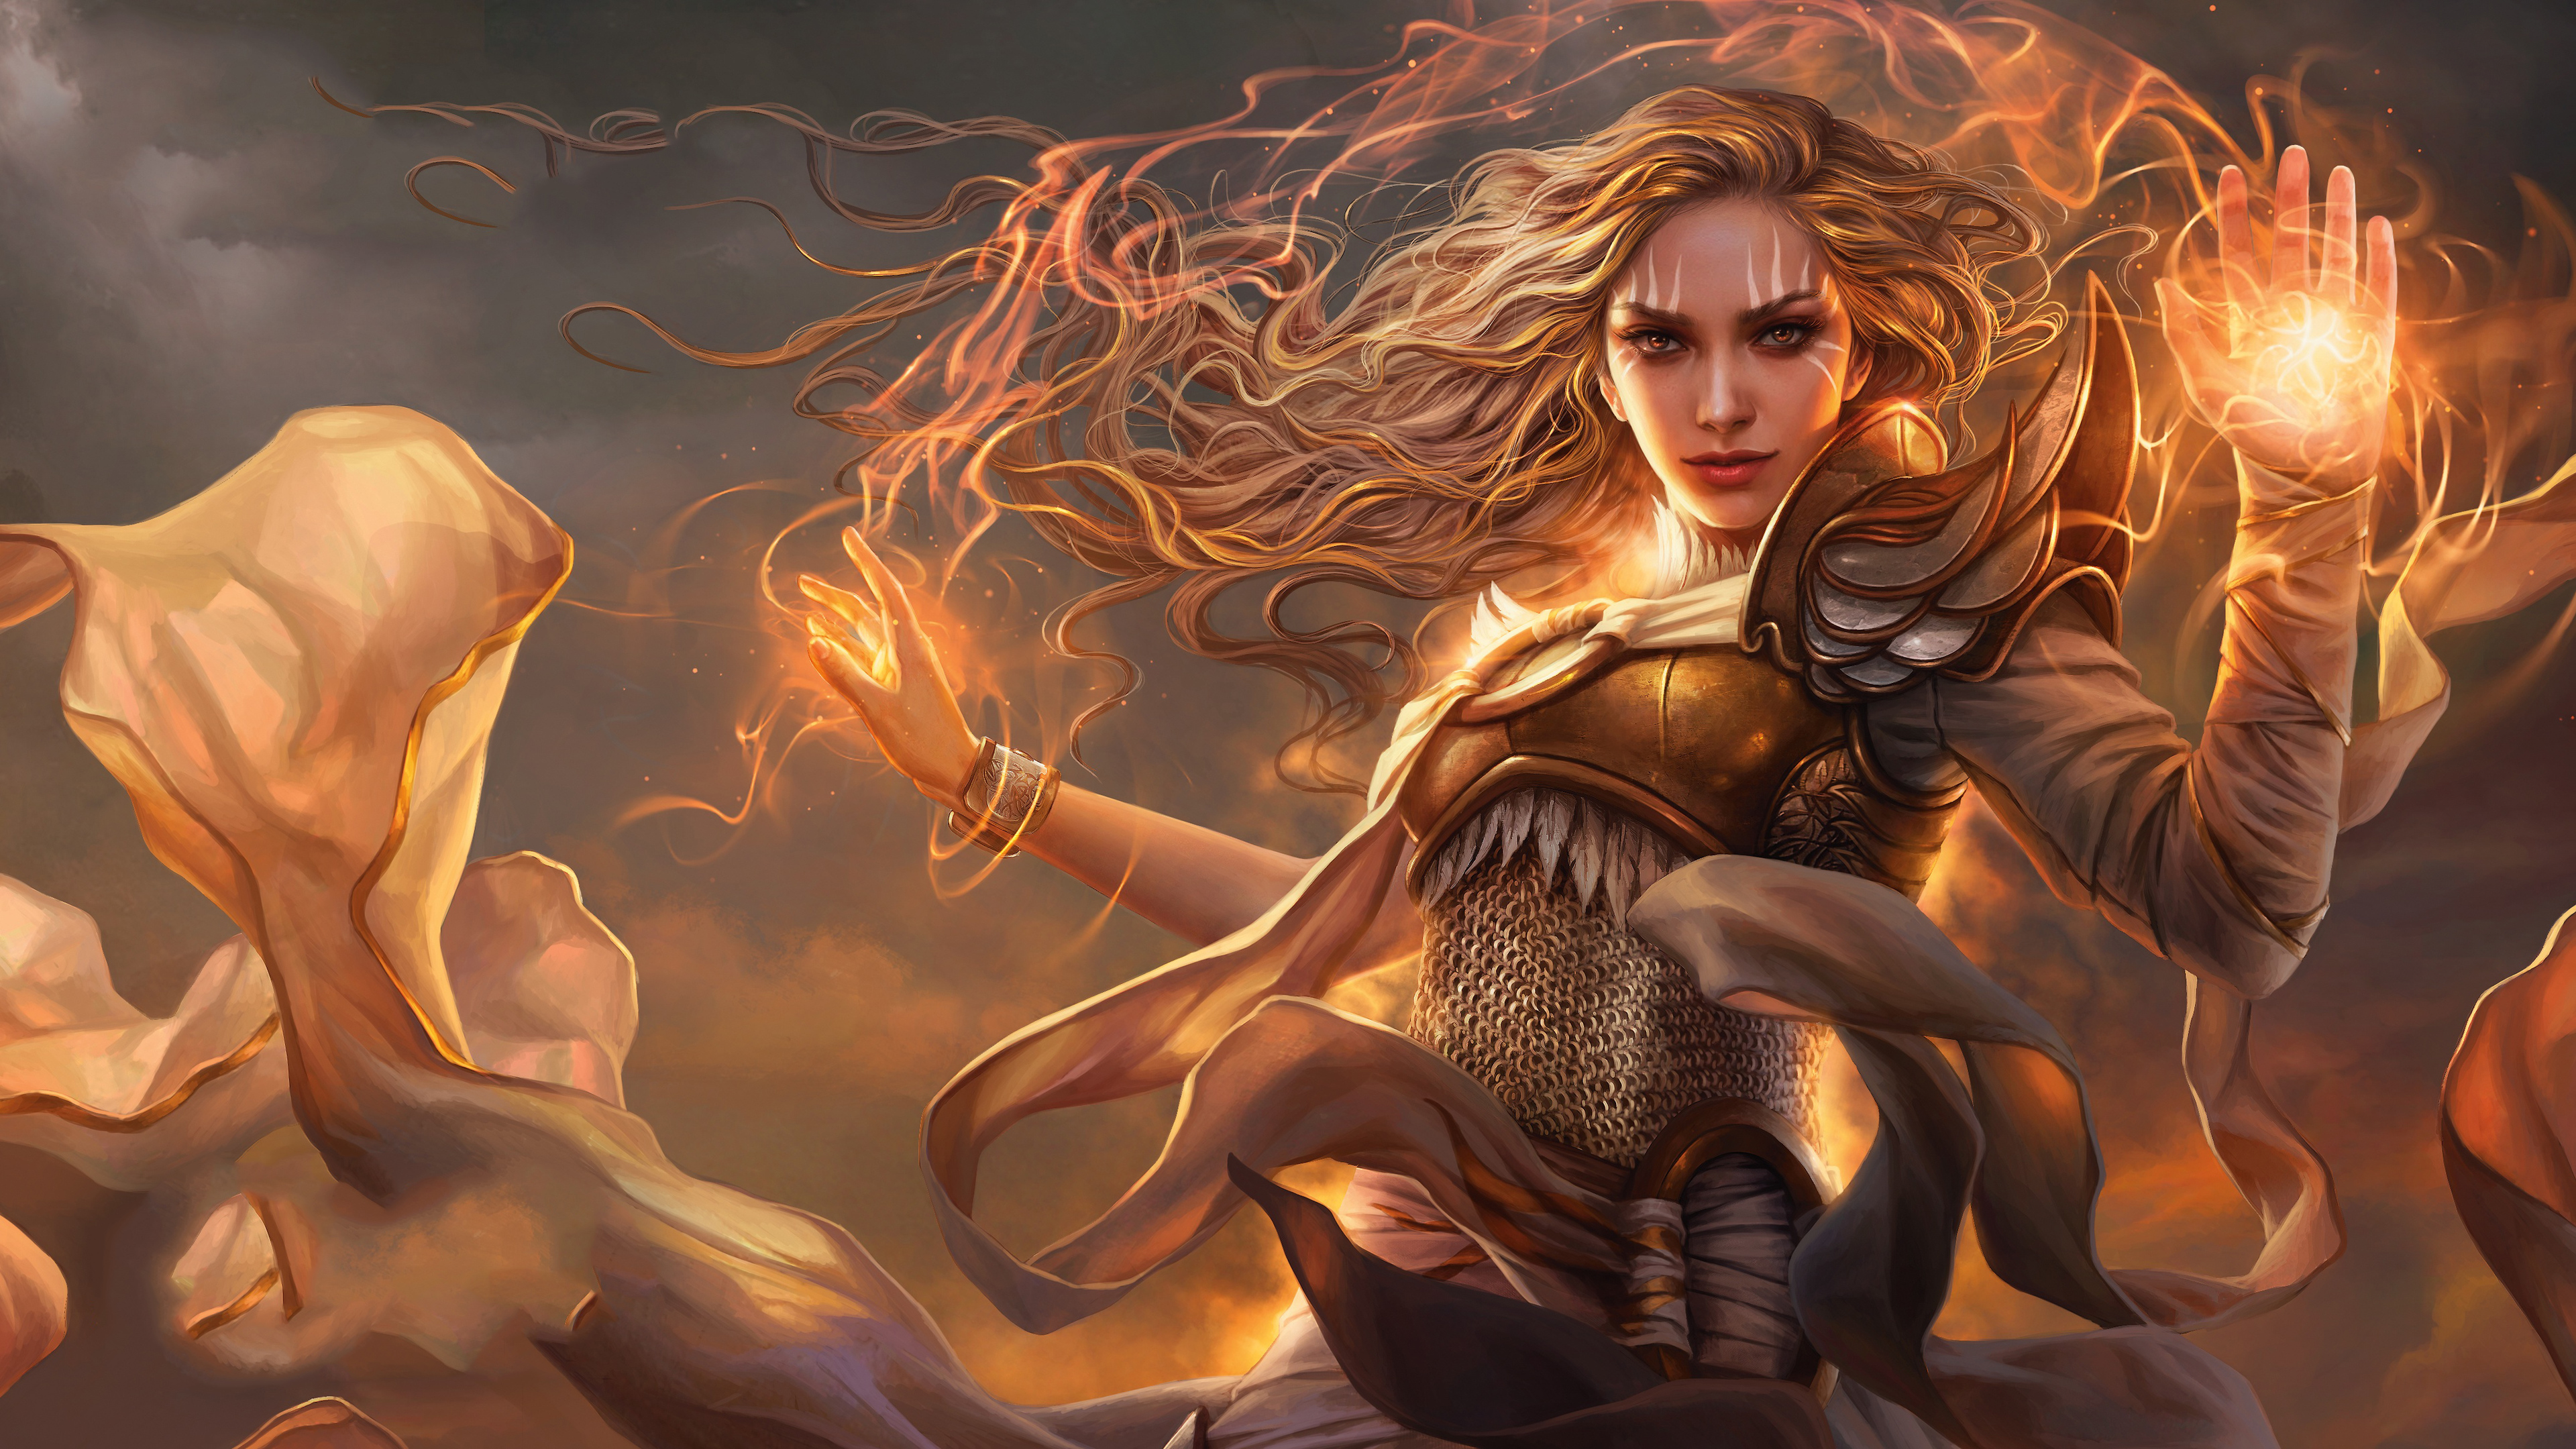 Wallpaper 4k Magic The Gathering Modern Horizons 2019 Games